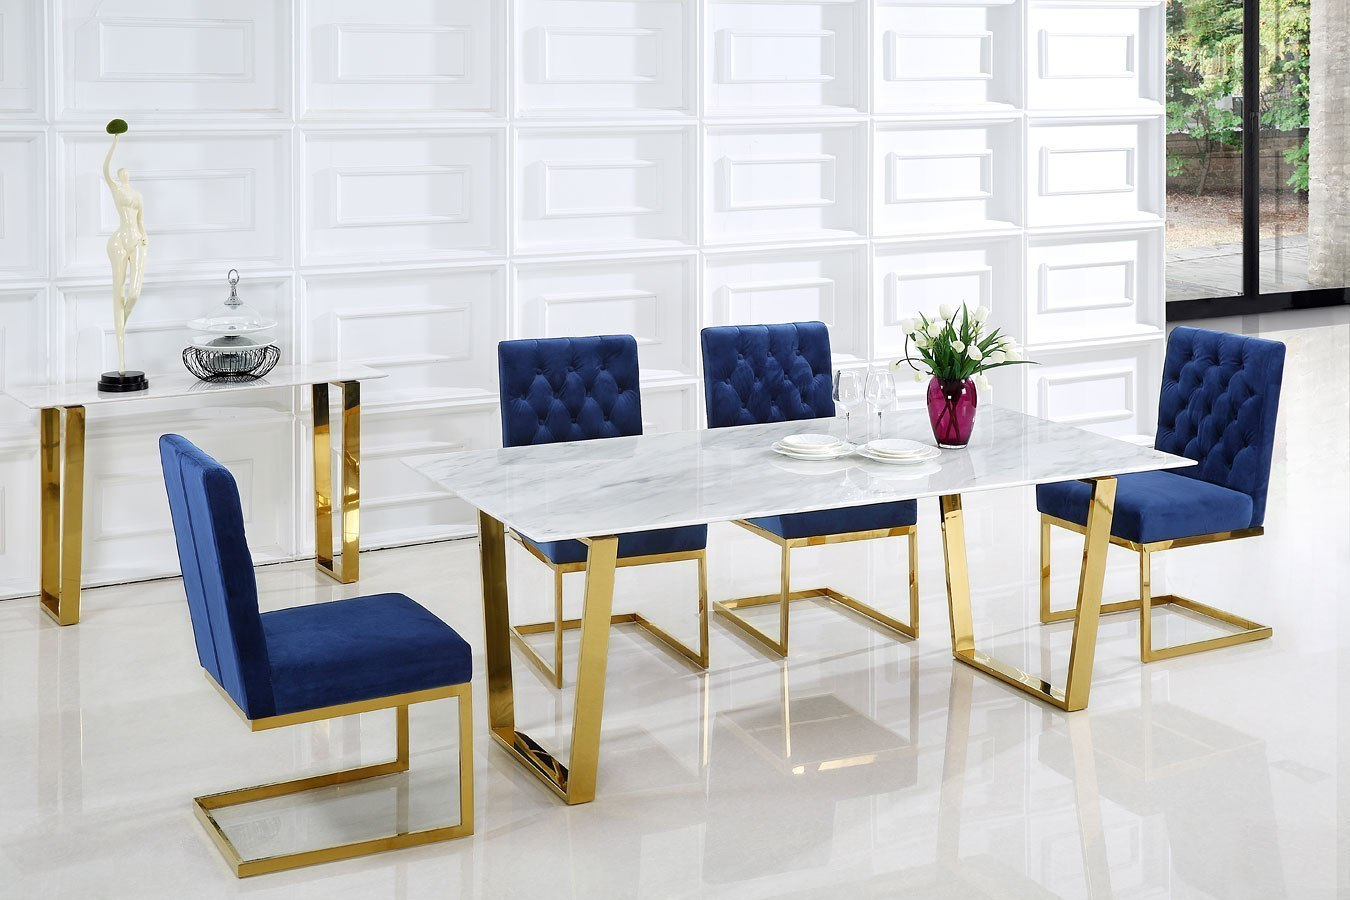 hight resolution of cameron dining room set w navy chairs meridian furniture furniture cart